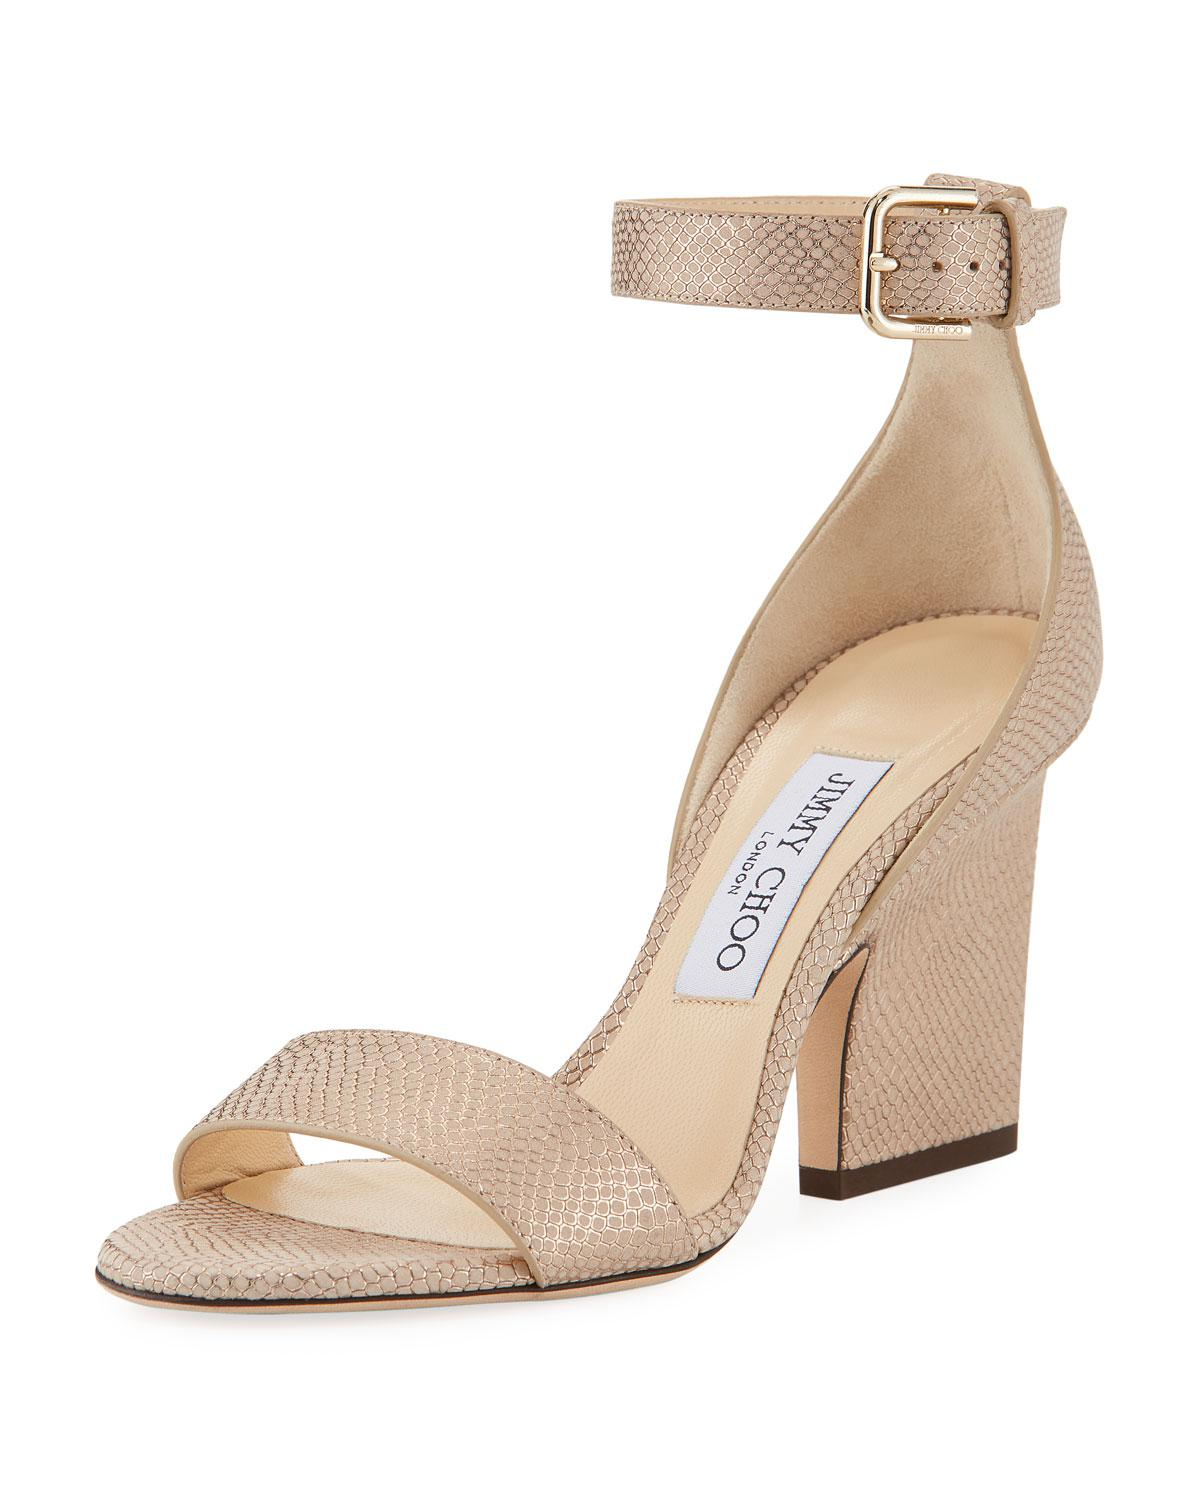 Mischa woven sandals - Metallic Jimmy Choo London l5OTiYESt